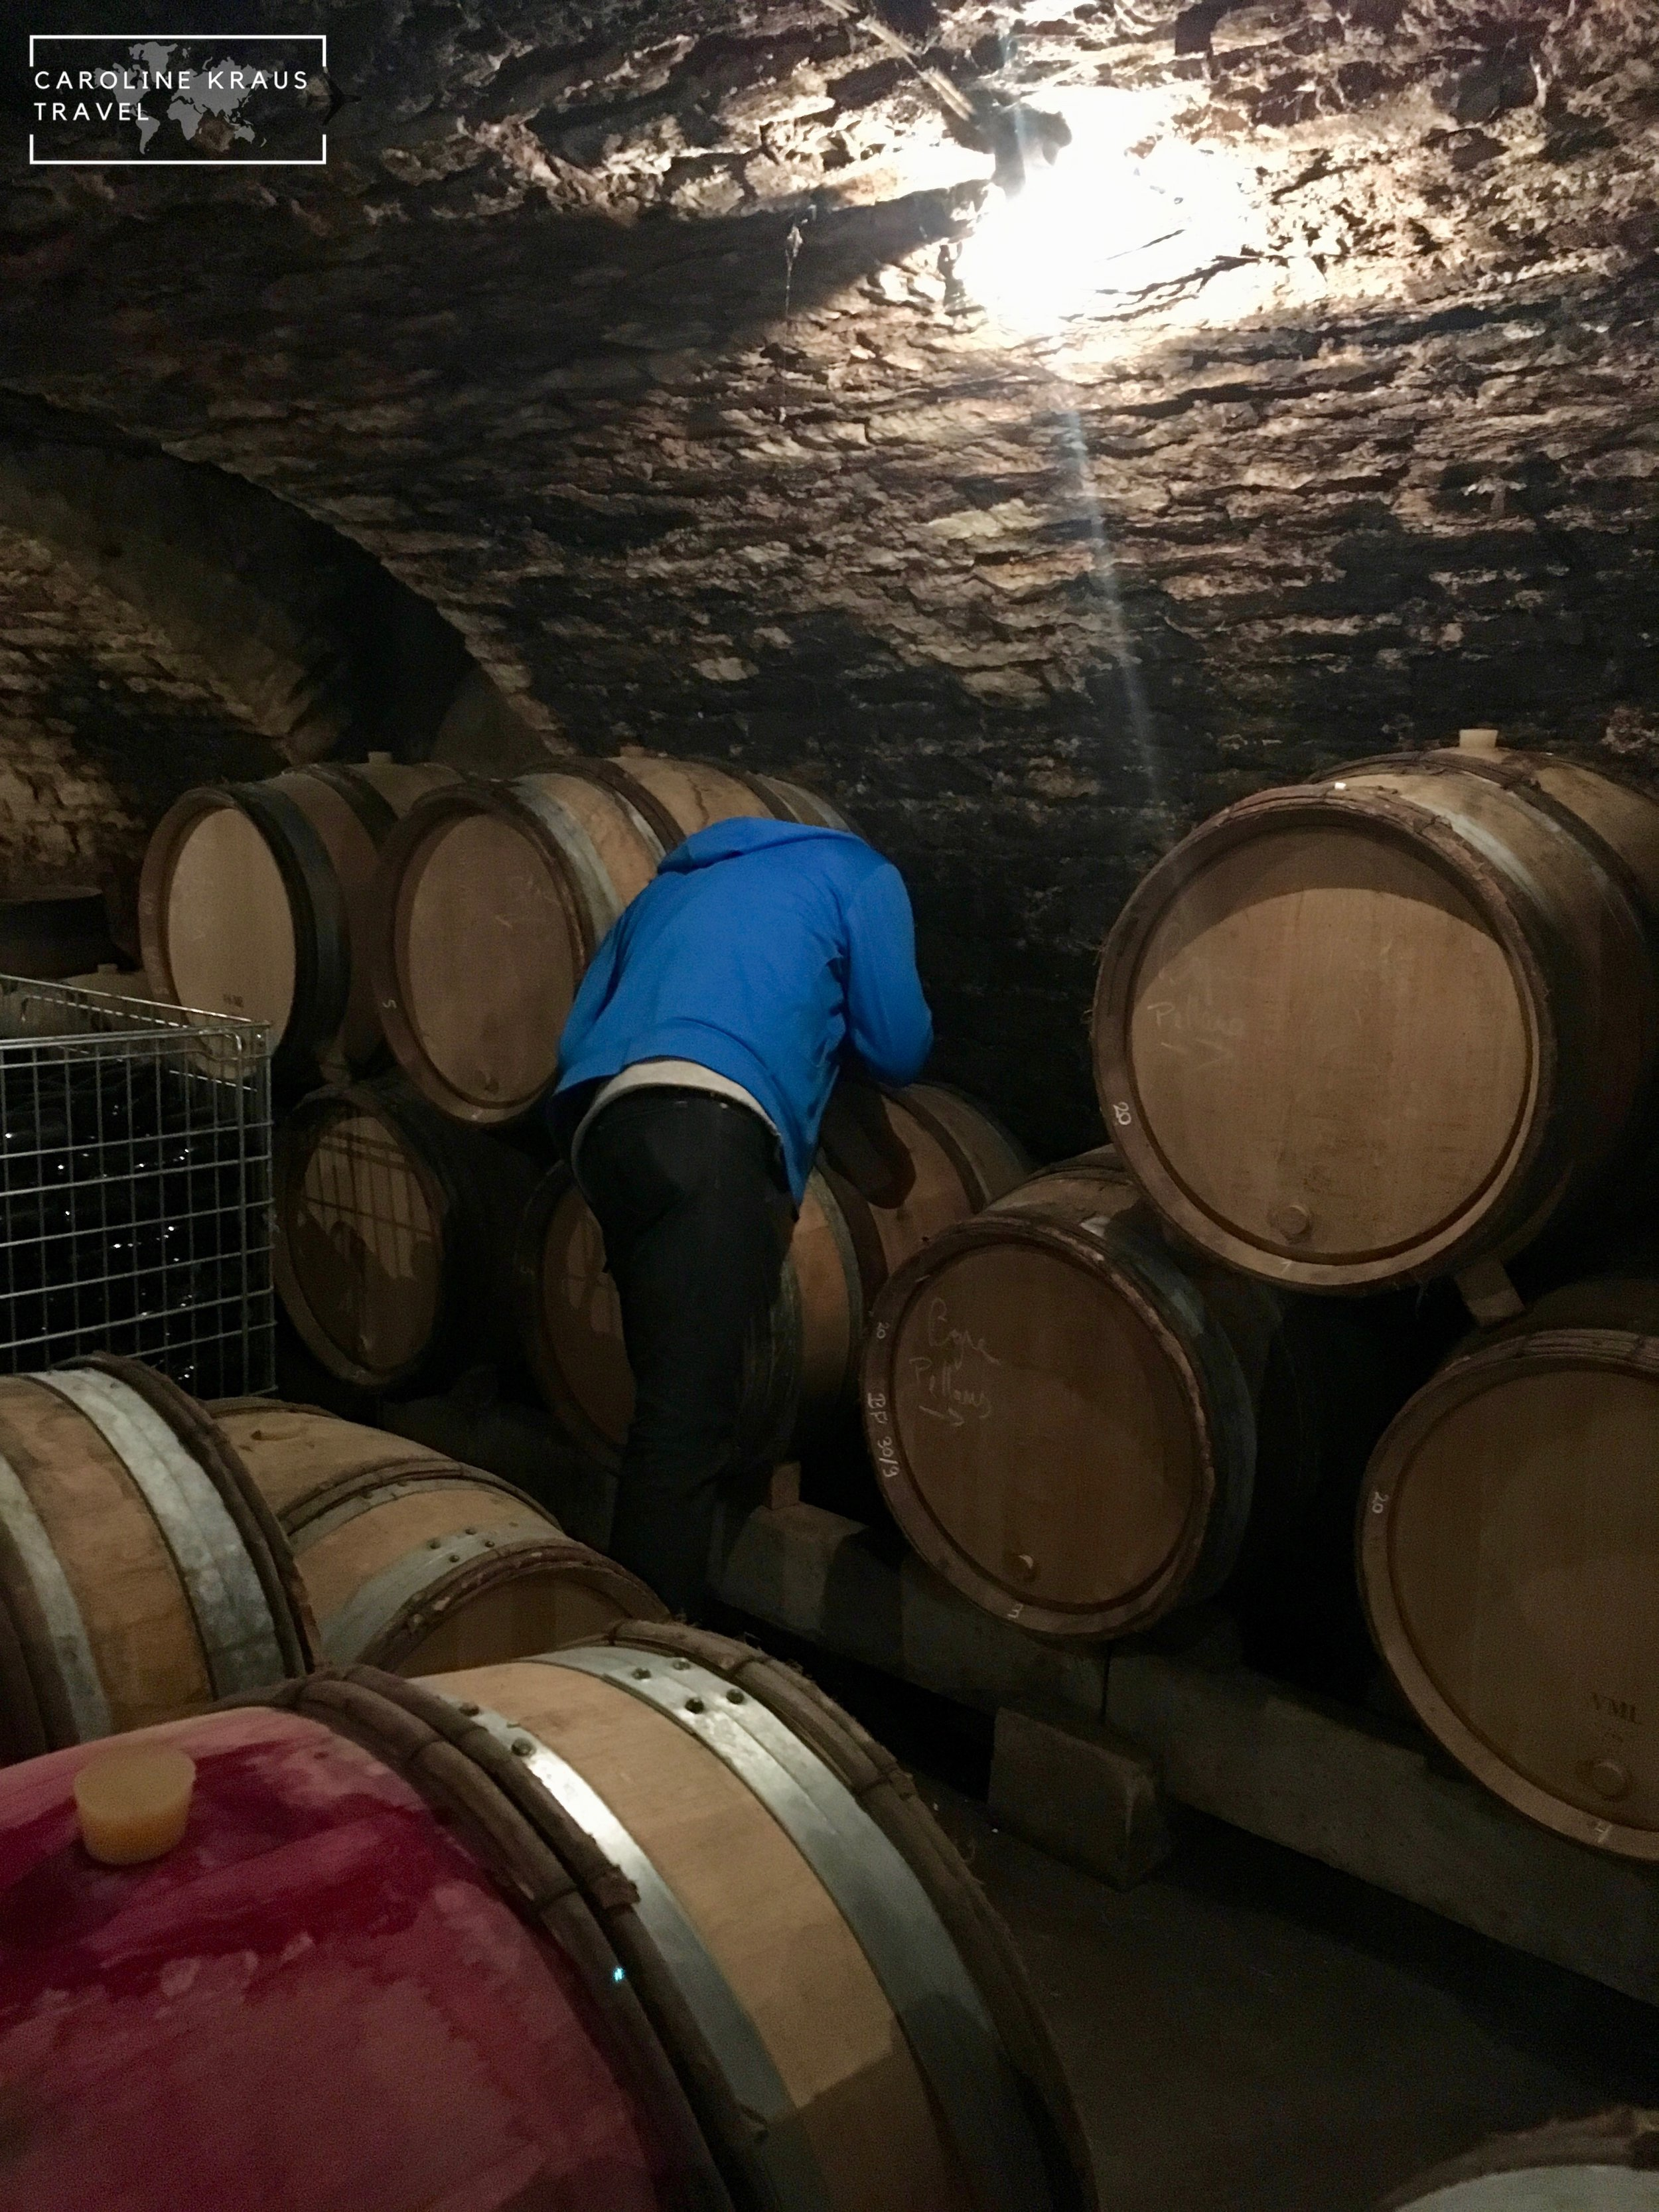 Richard Bos extracting wine from the barrel for our tasting